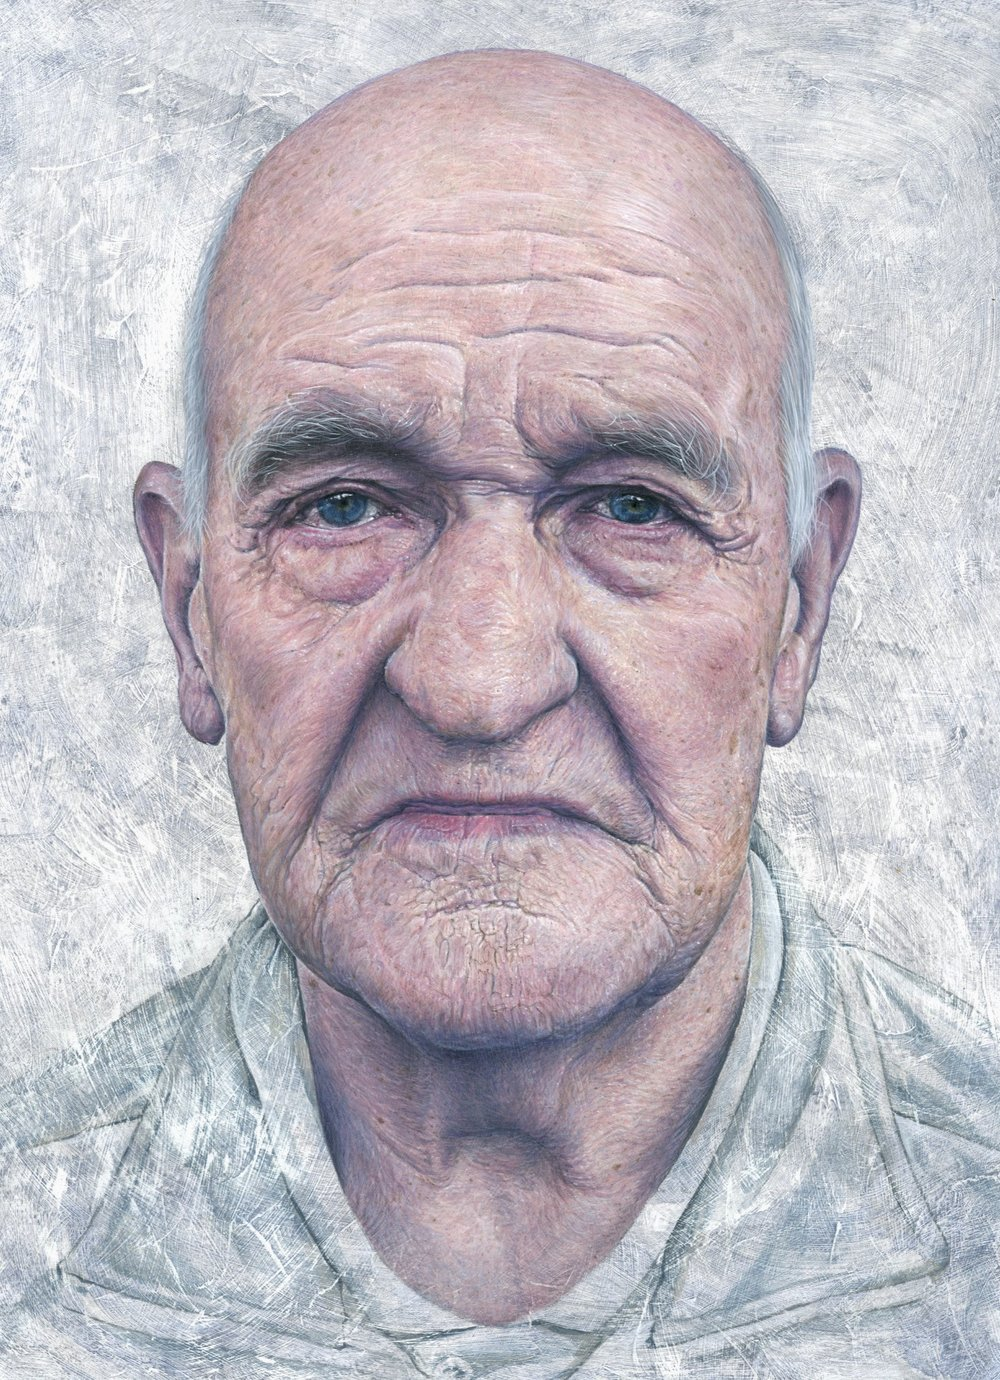 Steve Caldwelll, Bryne at 85, acrylic on wood panel., 30 x 24 cm,  http://www.steve-caldwell.co.uk